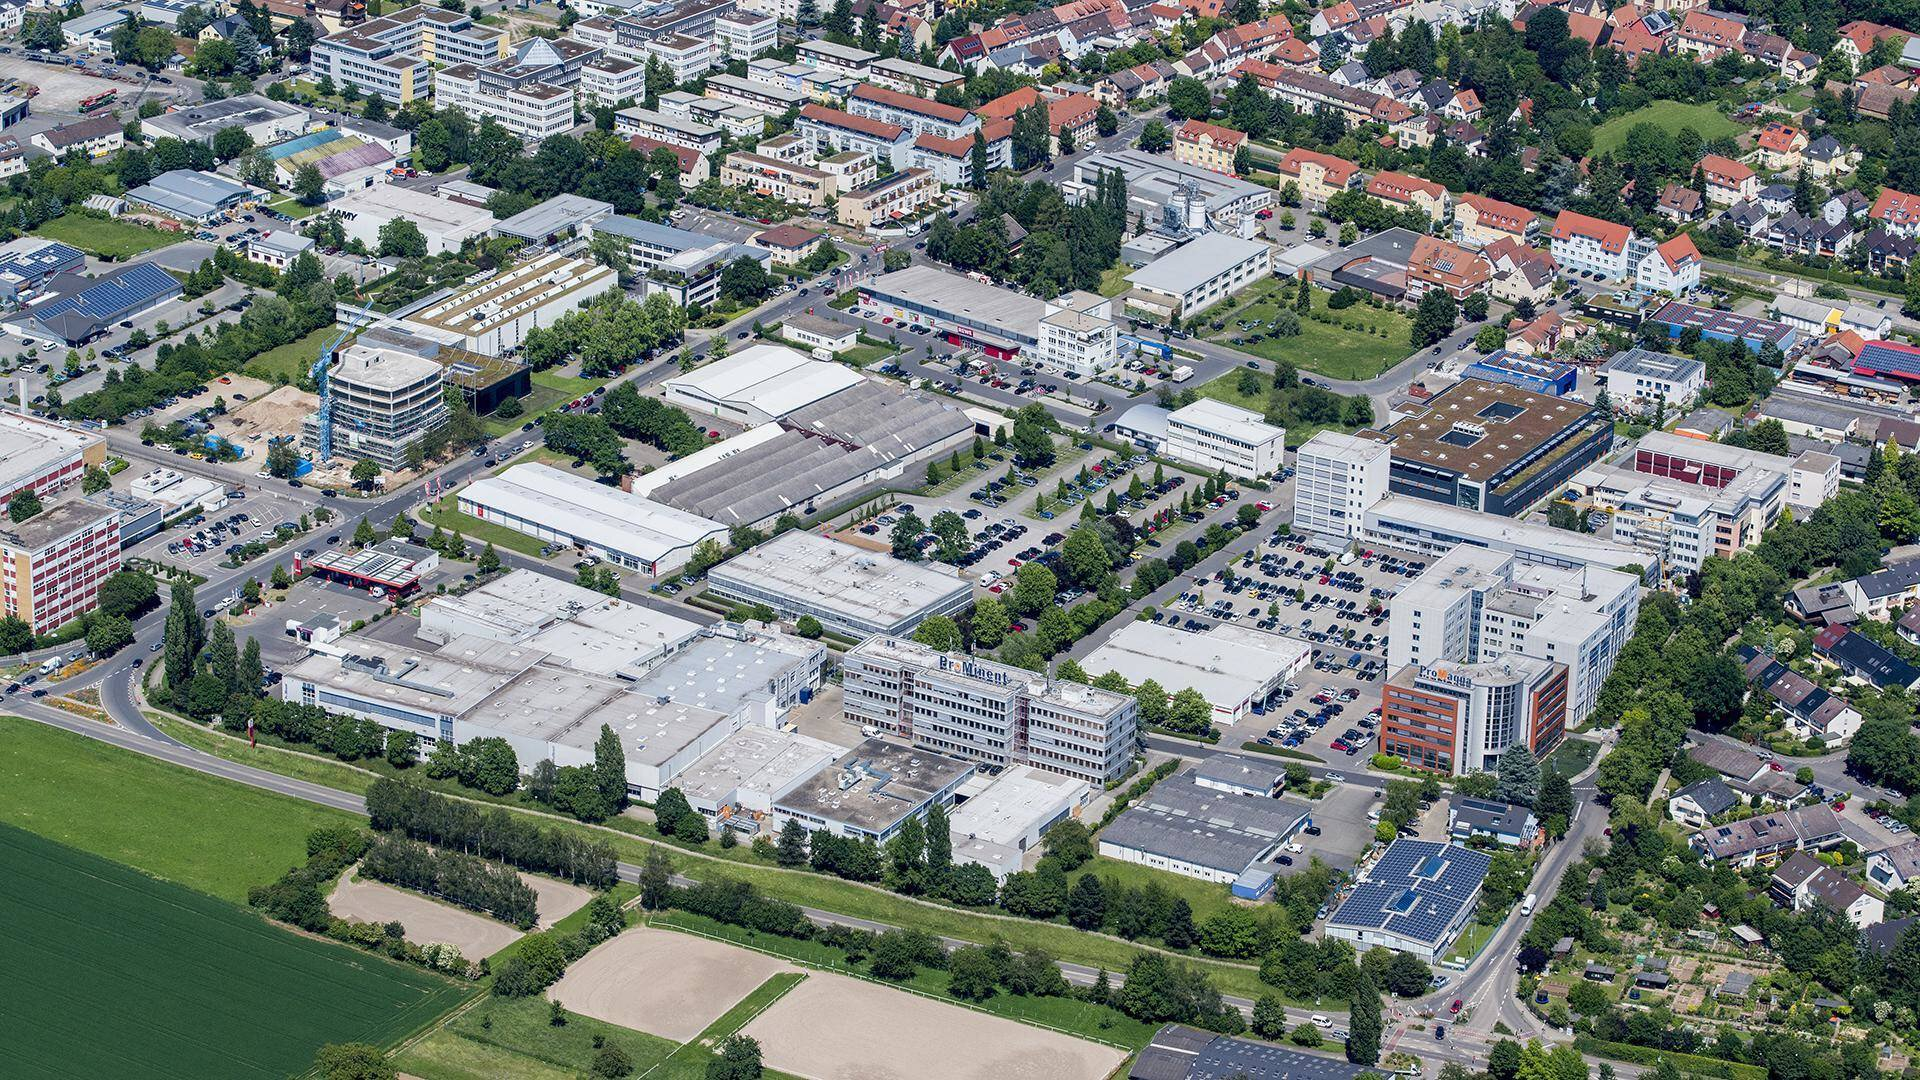 Gallery image 1 - Aerial view of the company premises in Heidelberg.